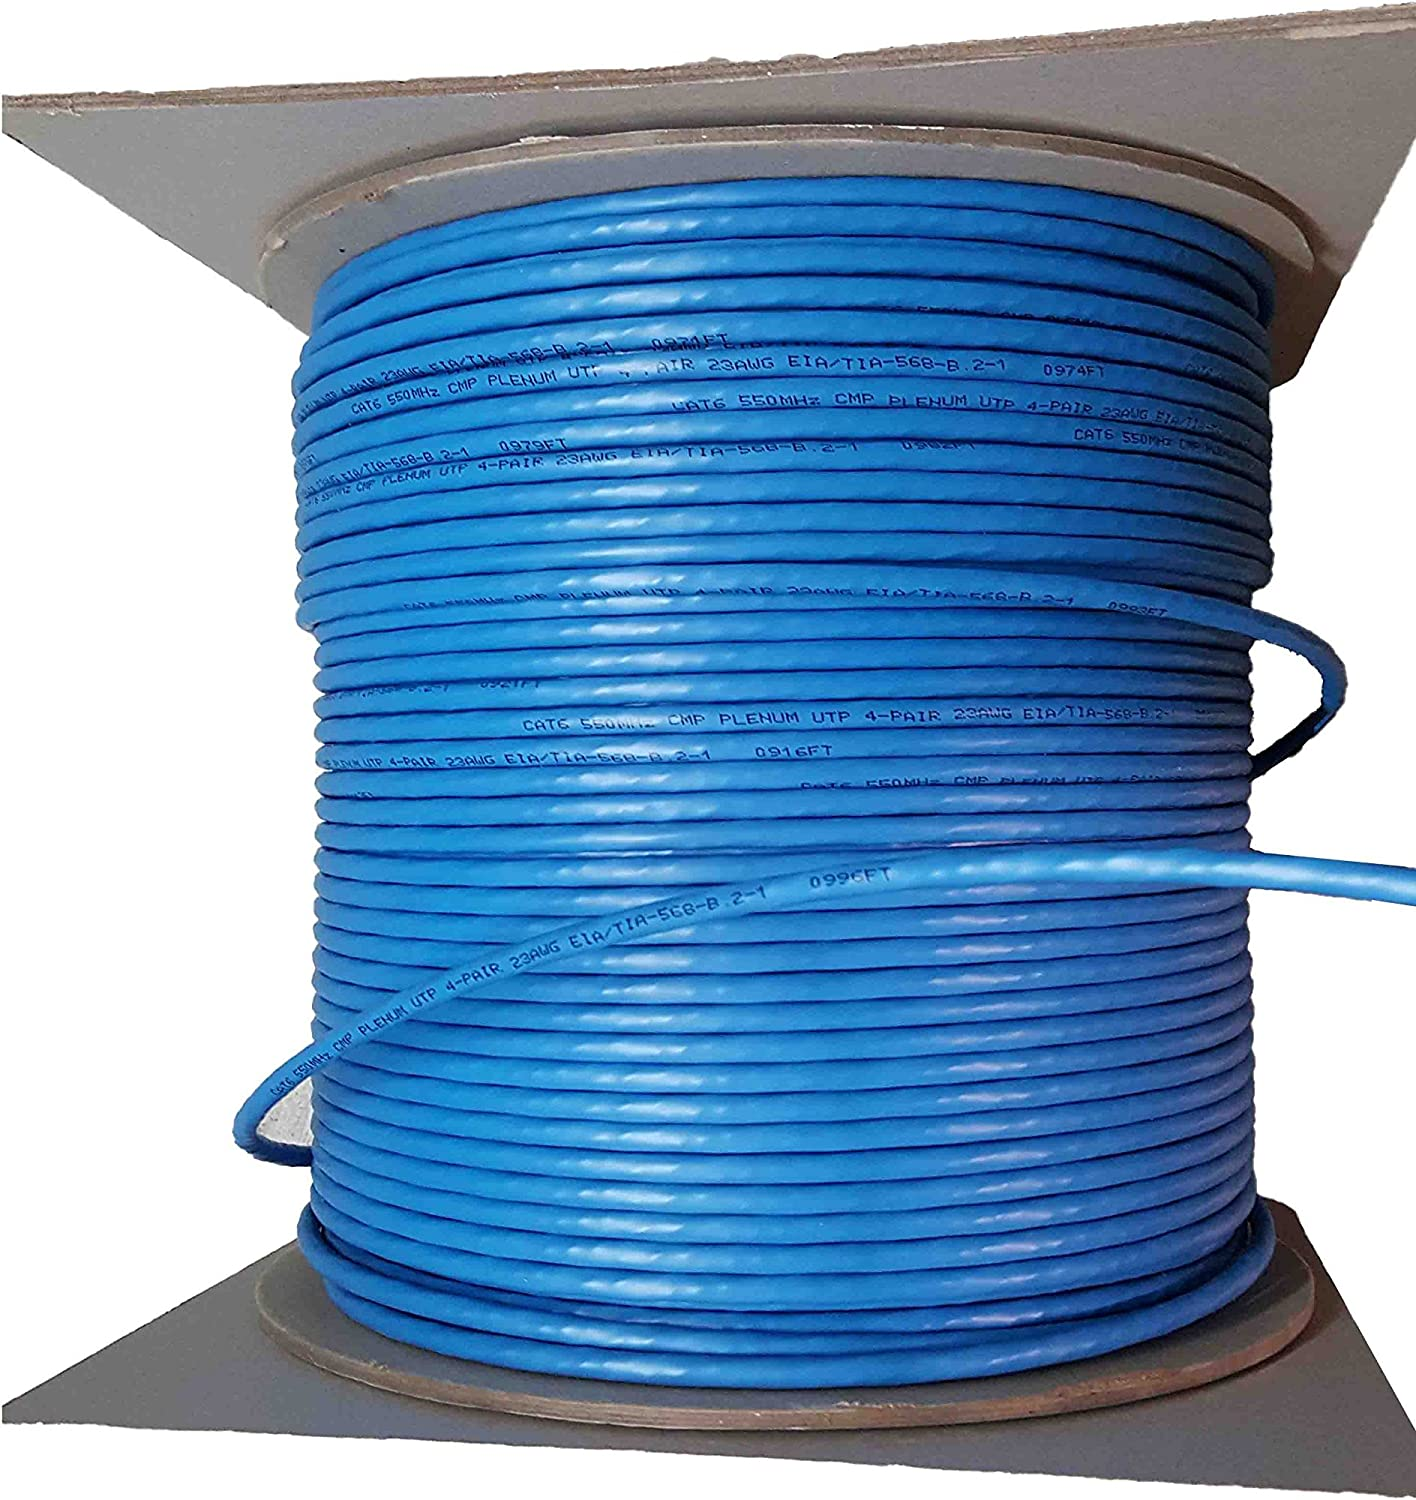 CAT5e Plenum CMP Rated 1000Ft UTP Bulk Ethernet Cable White iTechCables 350MHz Solid Conductor Network Cable Unshielded Twisted Pair Fluke Test Passed 24AWG 4Pair